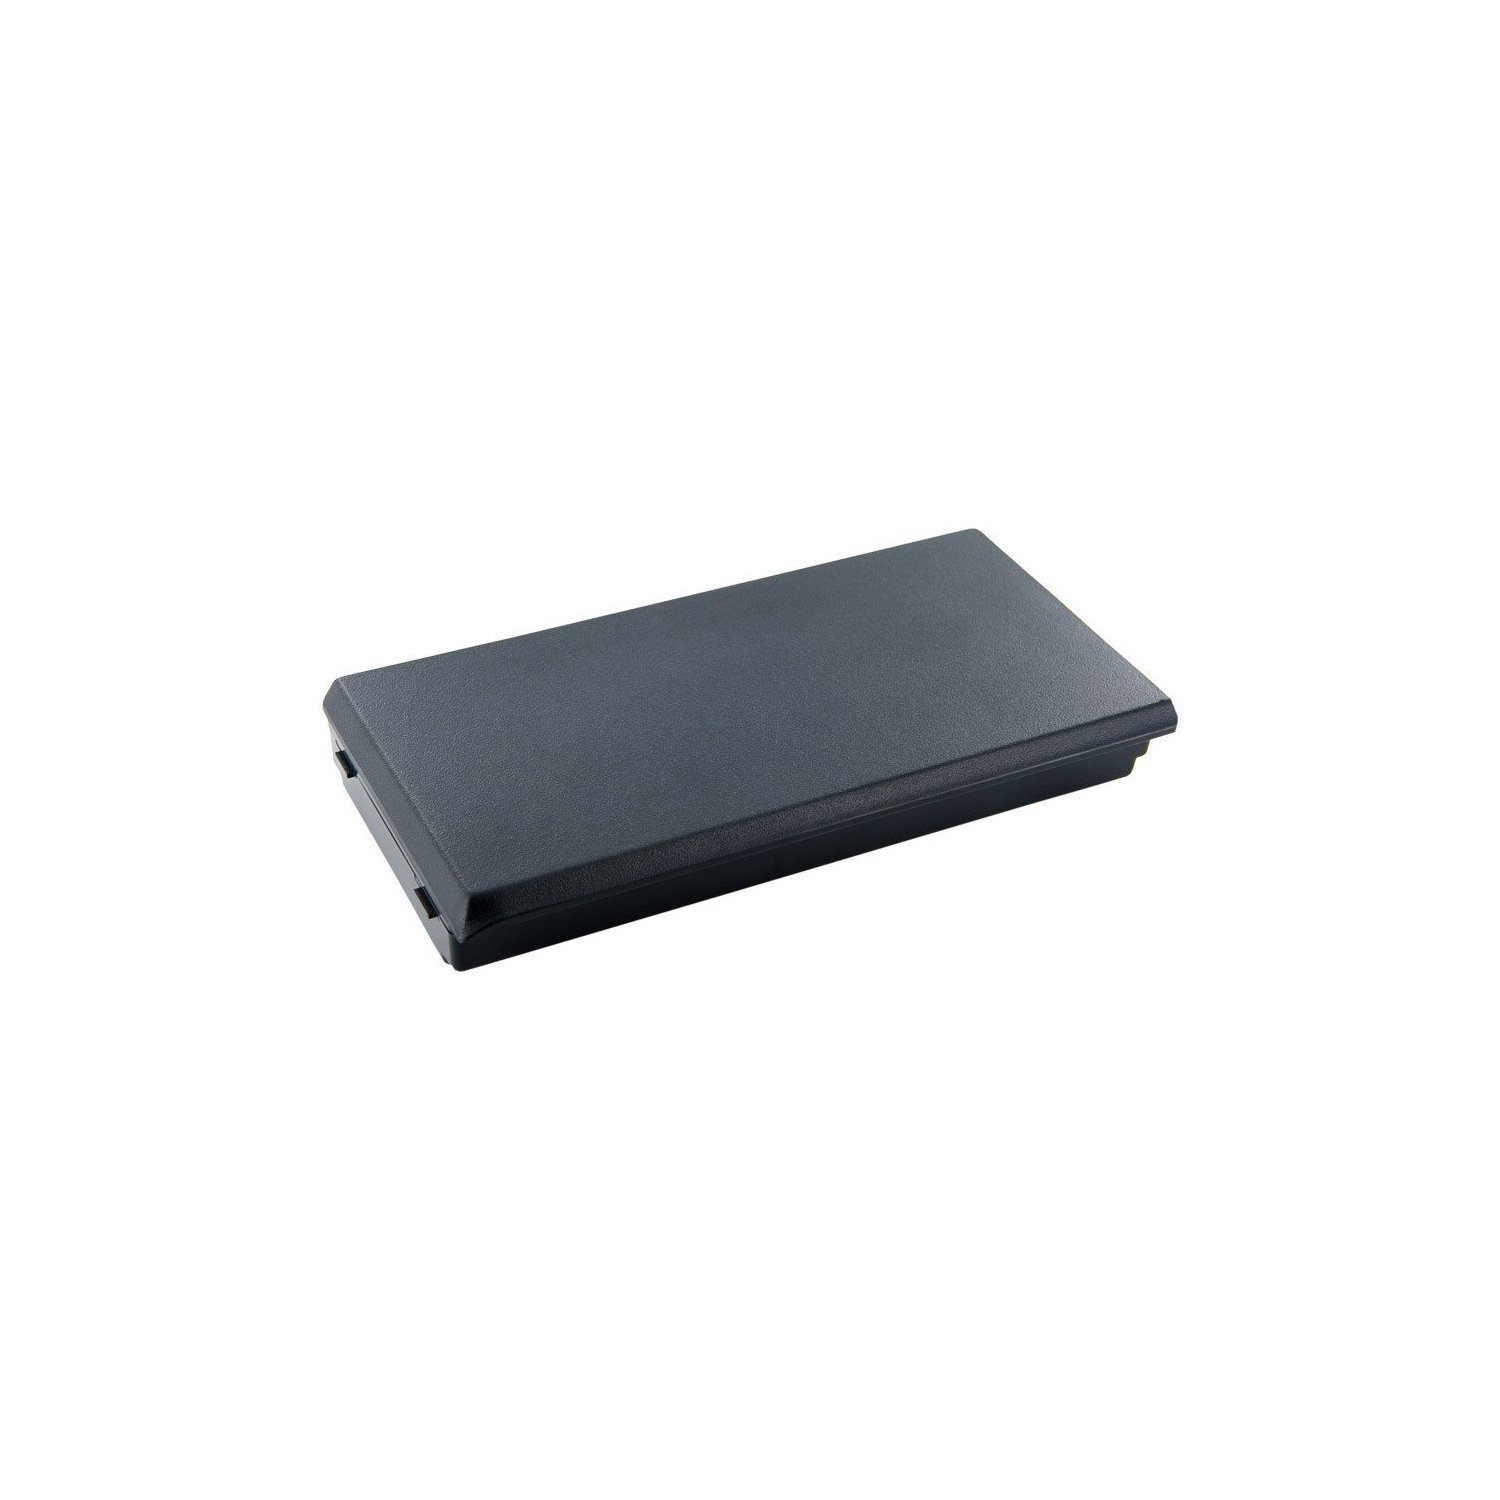 Asus A32-F5: New Laptop Replacement Battery for ASUS A32-F5,6 cells